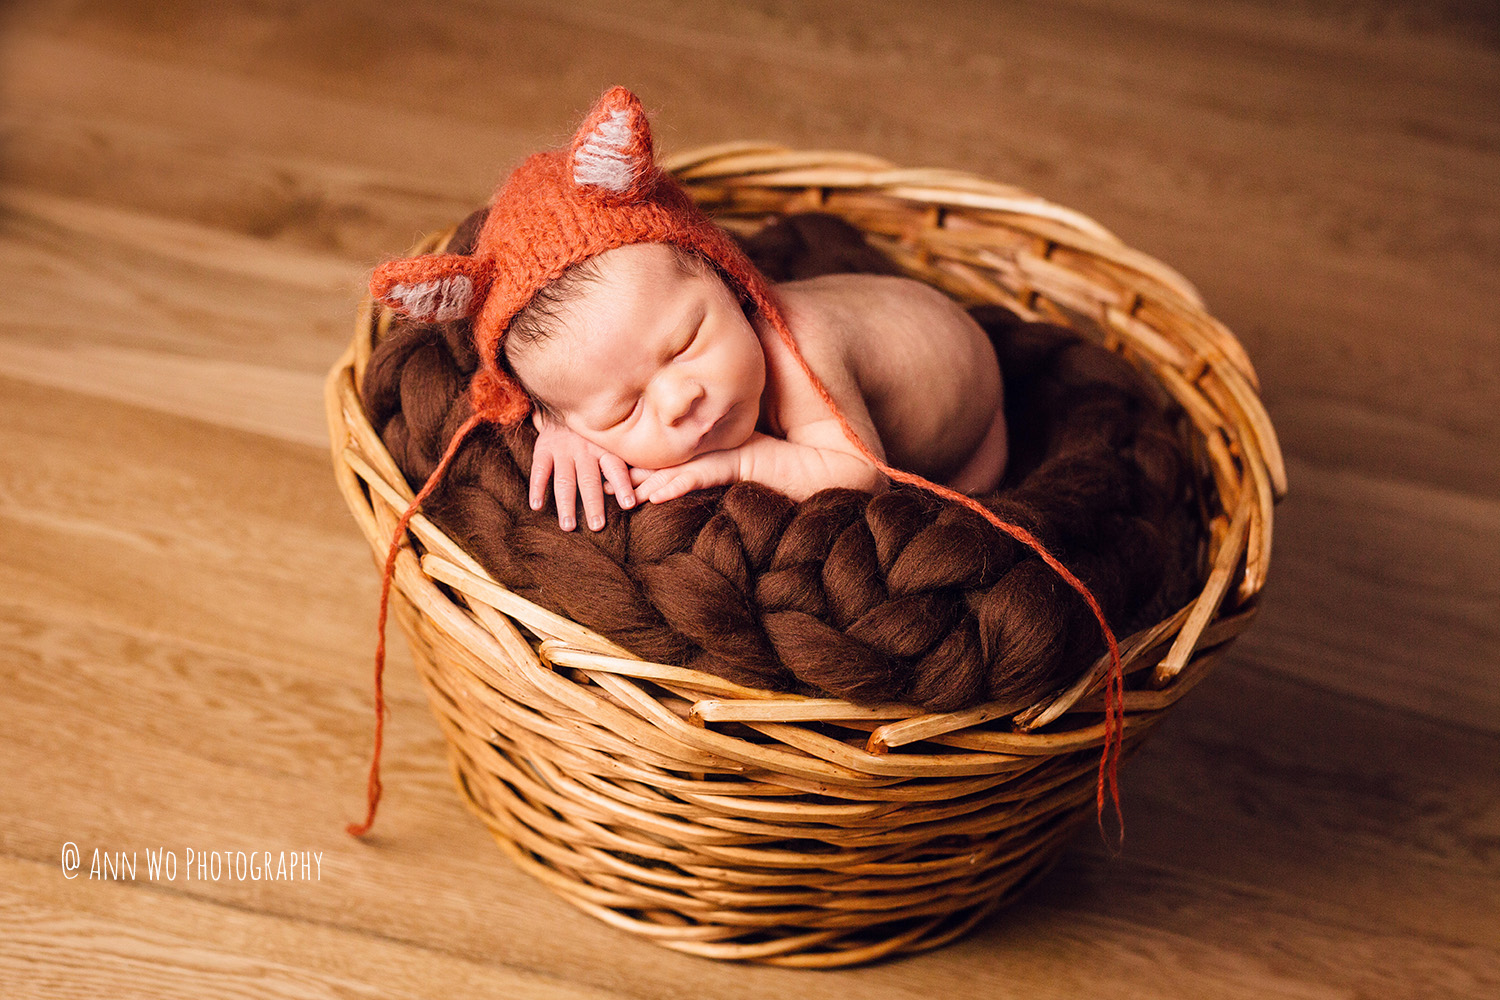 newborn-baby-photography-at-home-studio-set-up-Ann-Wo-London-bulldog-04.JPG